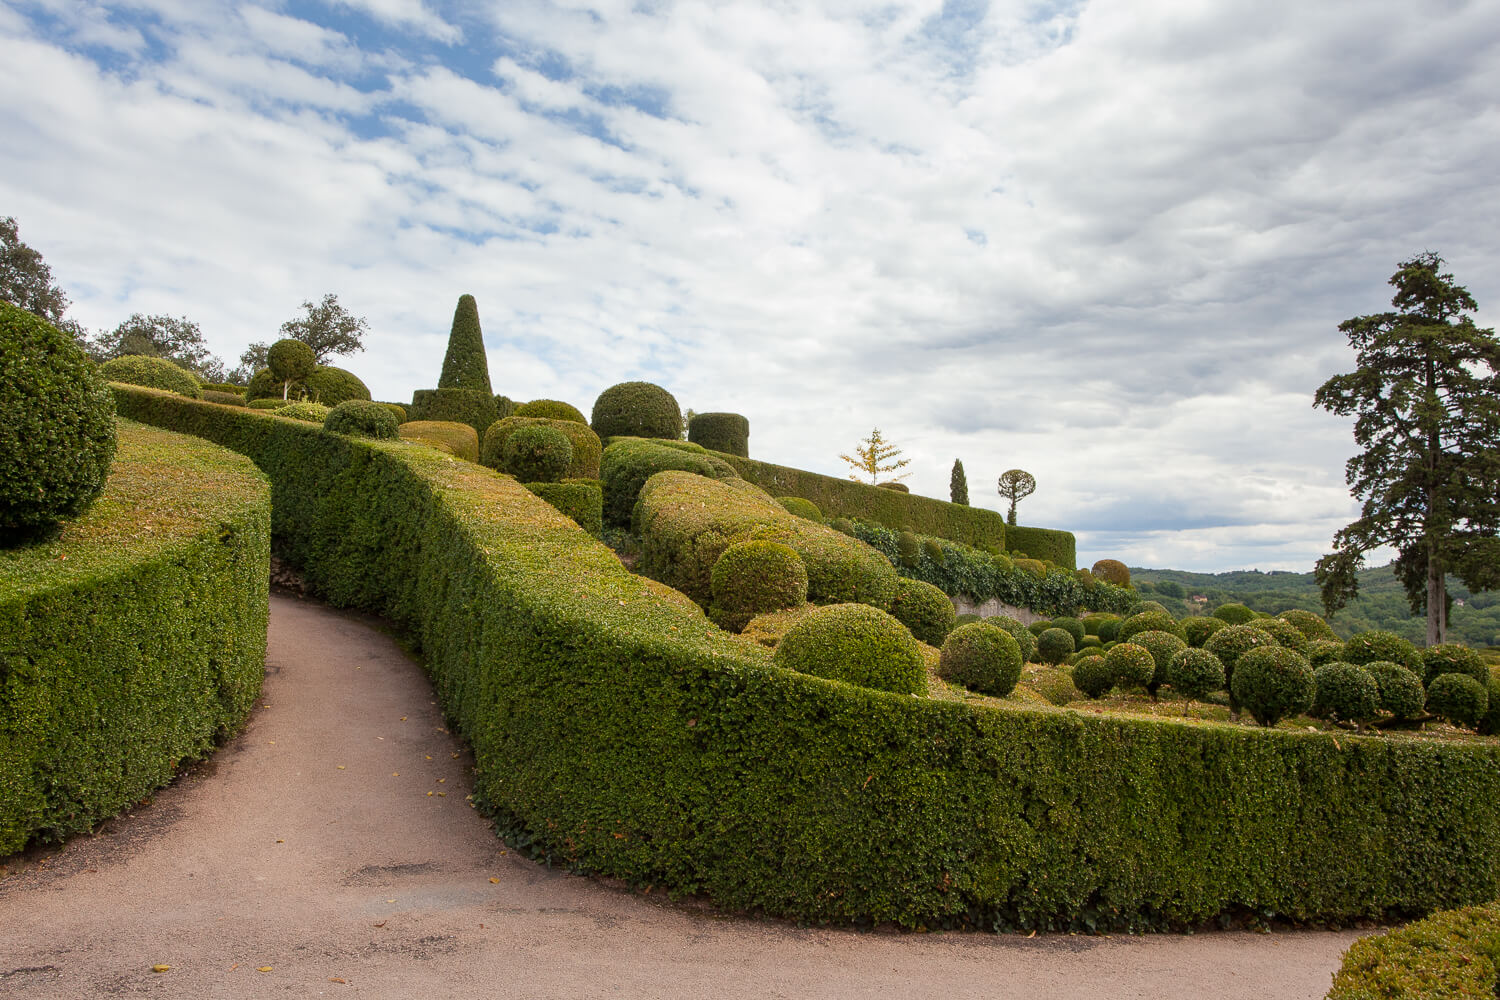 Sculpted topiaries in the gardens of marqueyssac